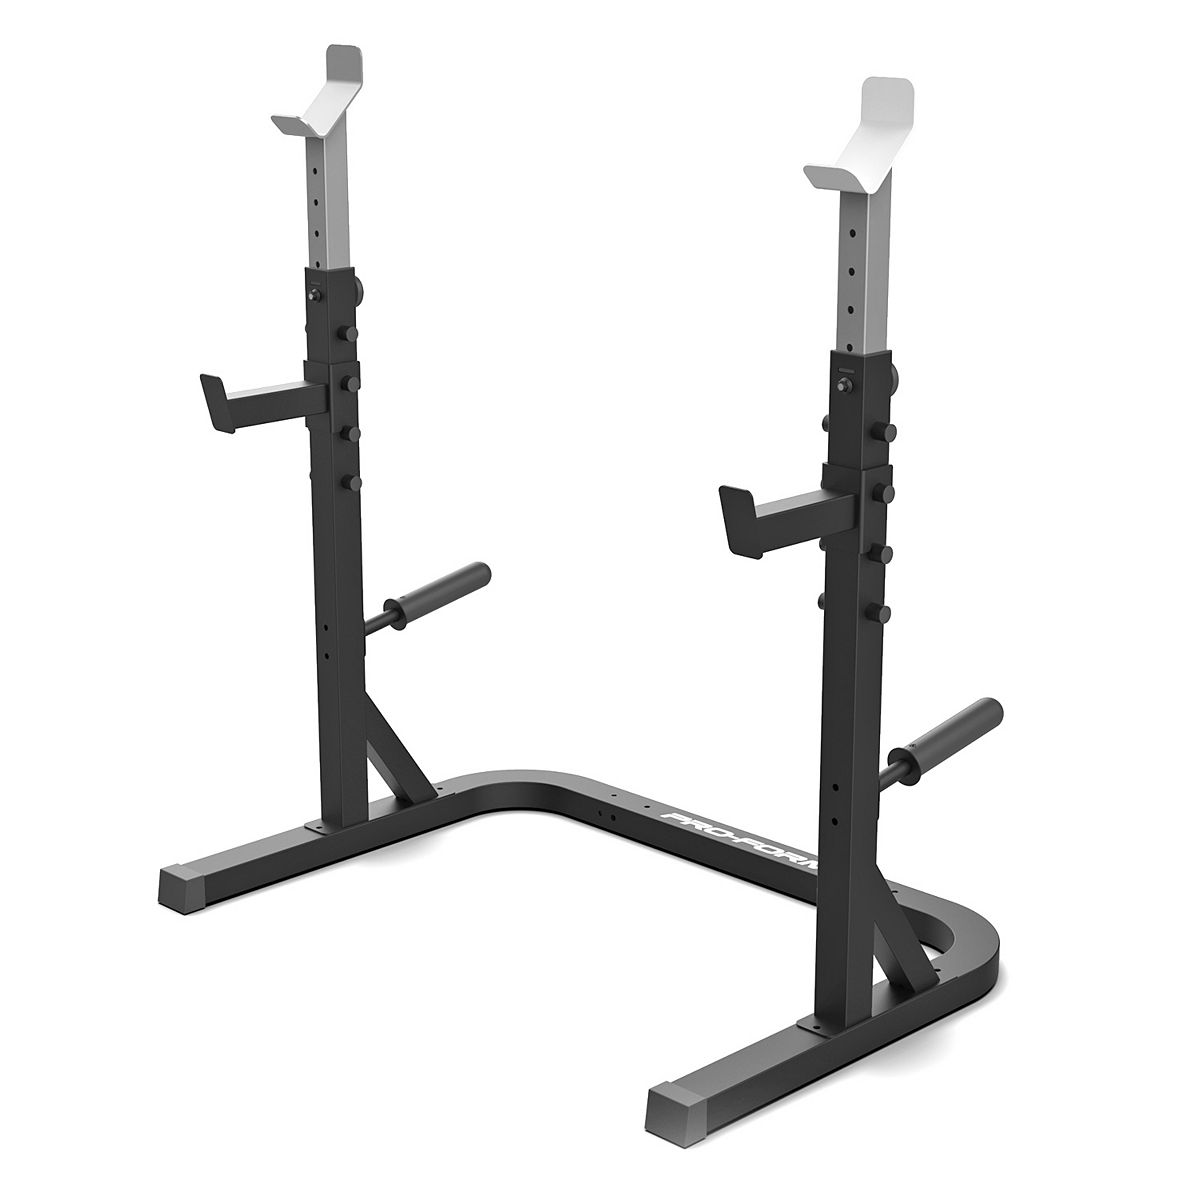 ProForm Sport Olympic Rack XT Home Gym + $10 Kohls Cash